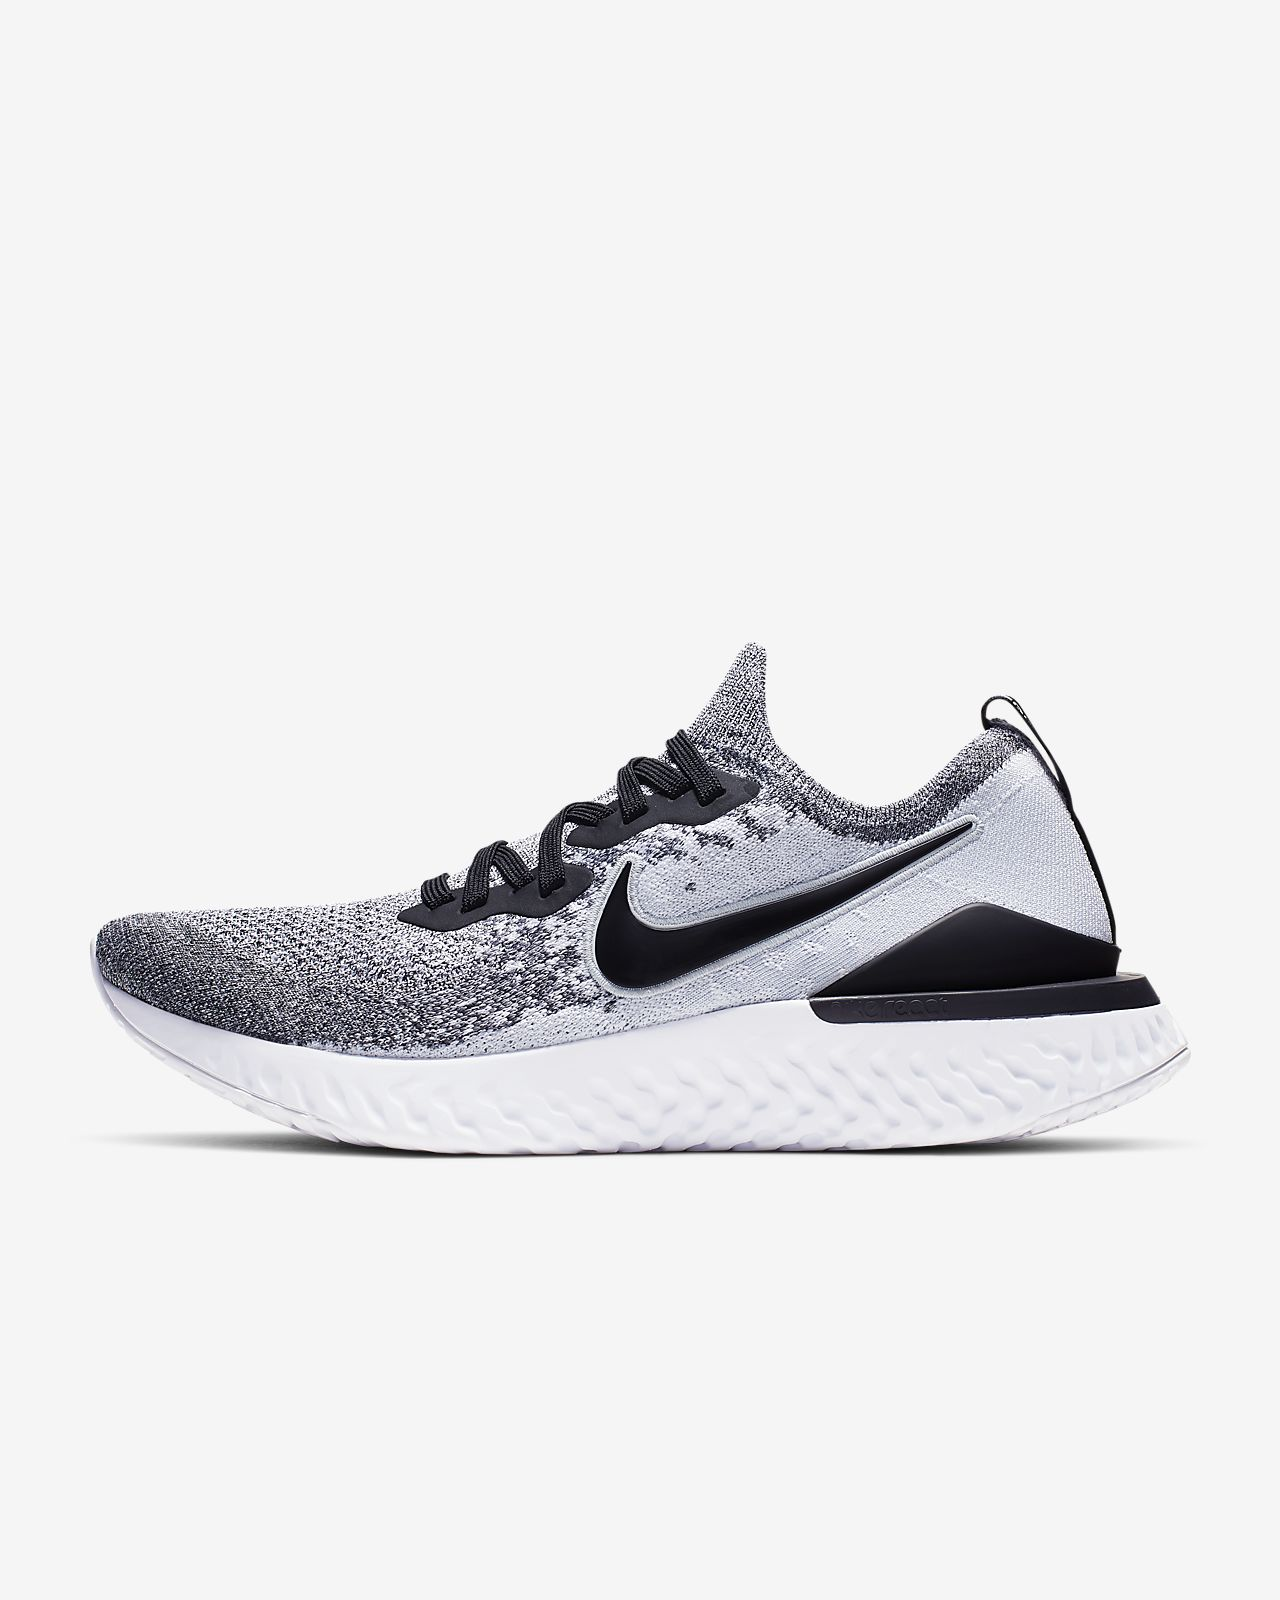 reputable site 1b263 ffdc7 ... Nike Epic React Flyknit 2 Men s Running Shoe